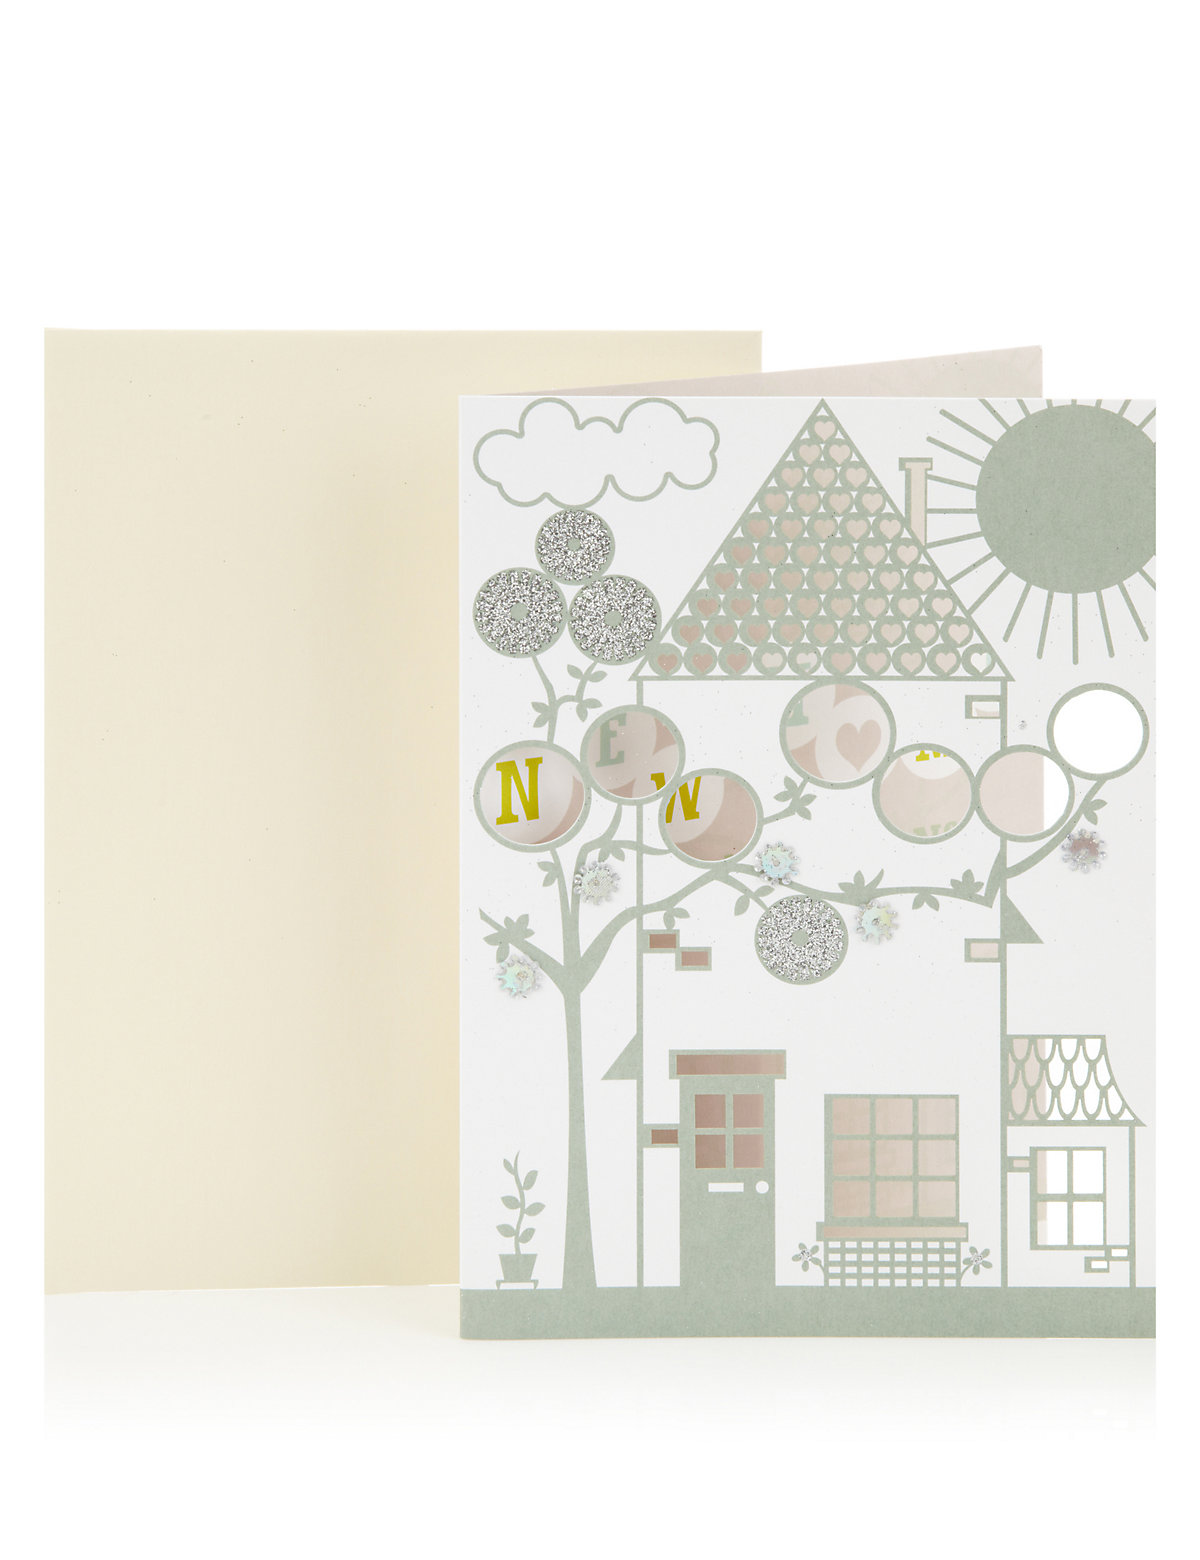 Die Cut New Home Greetings Card